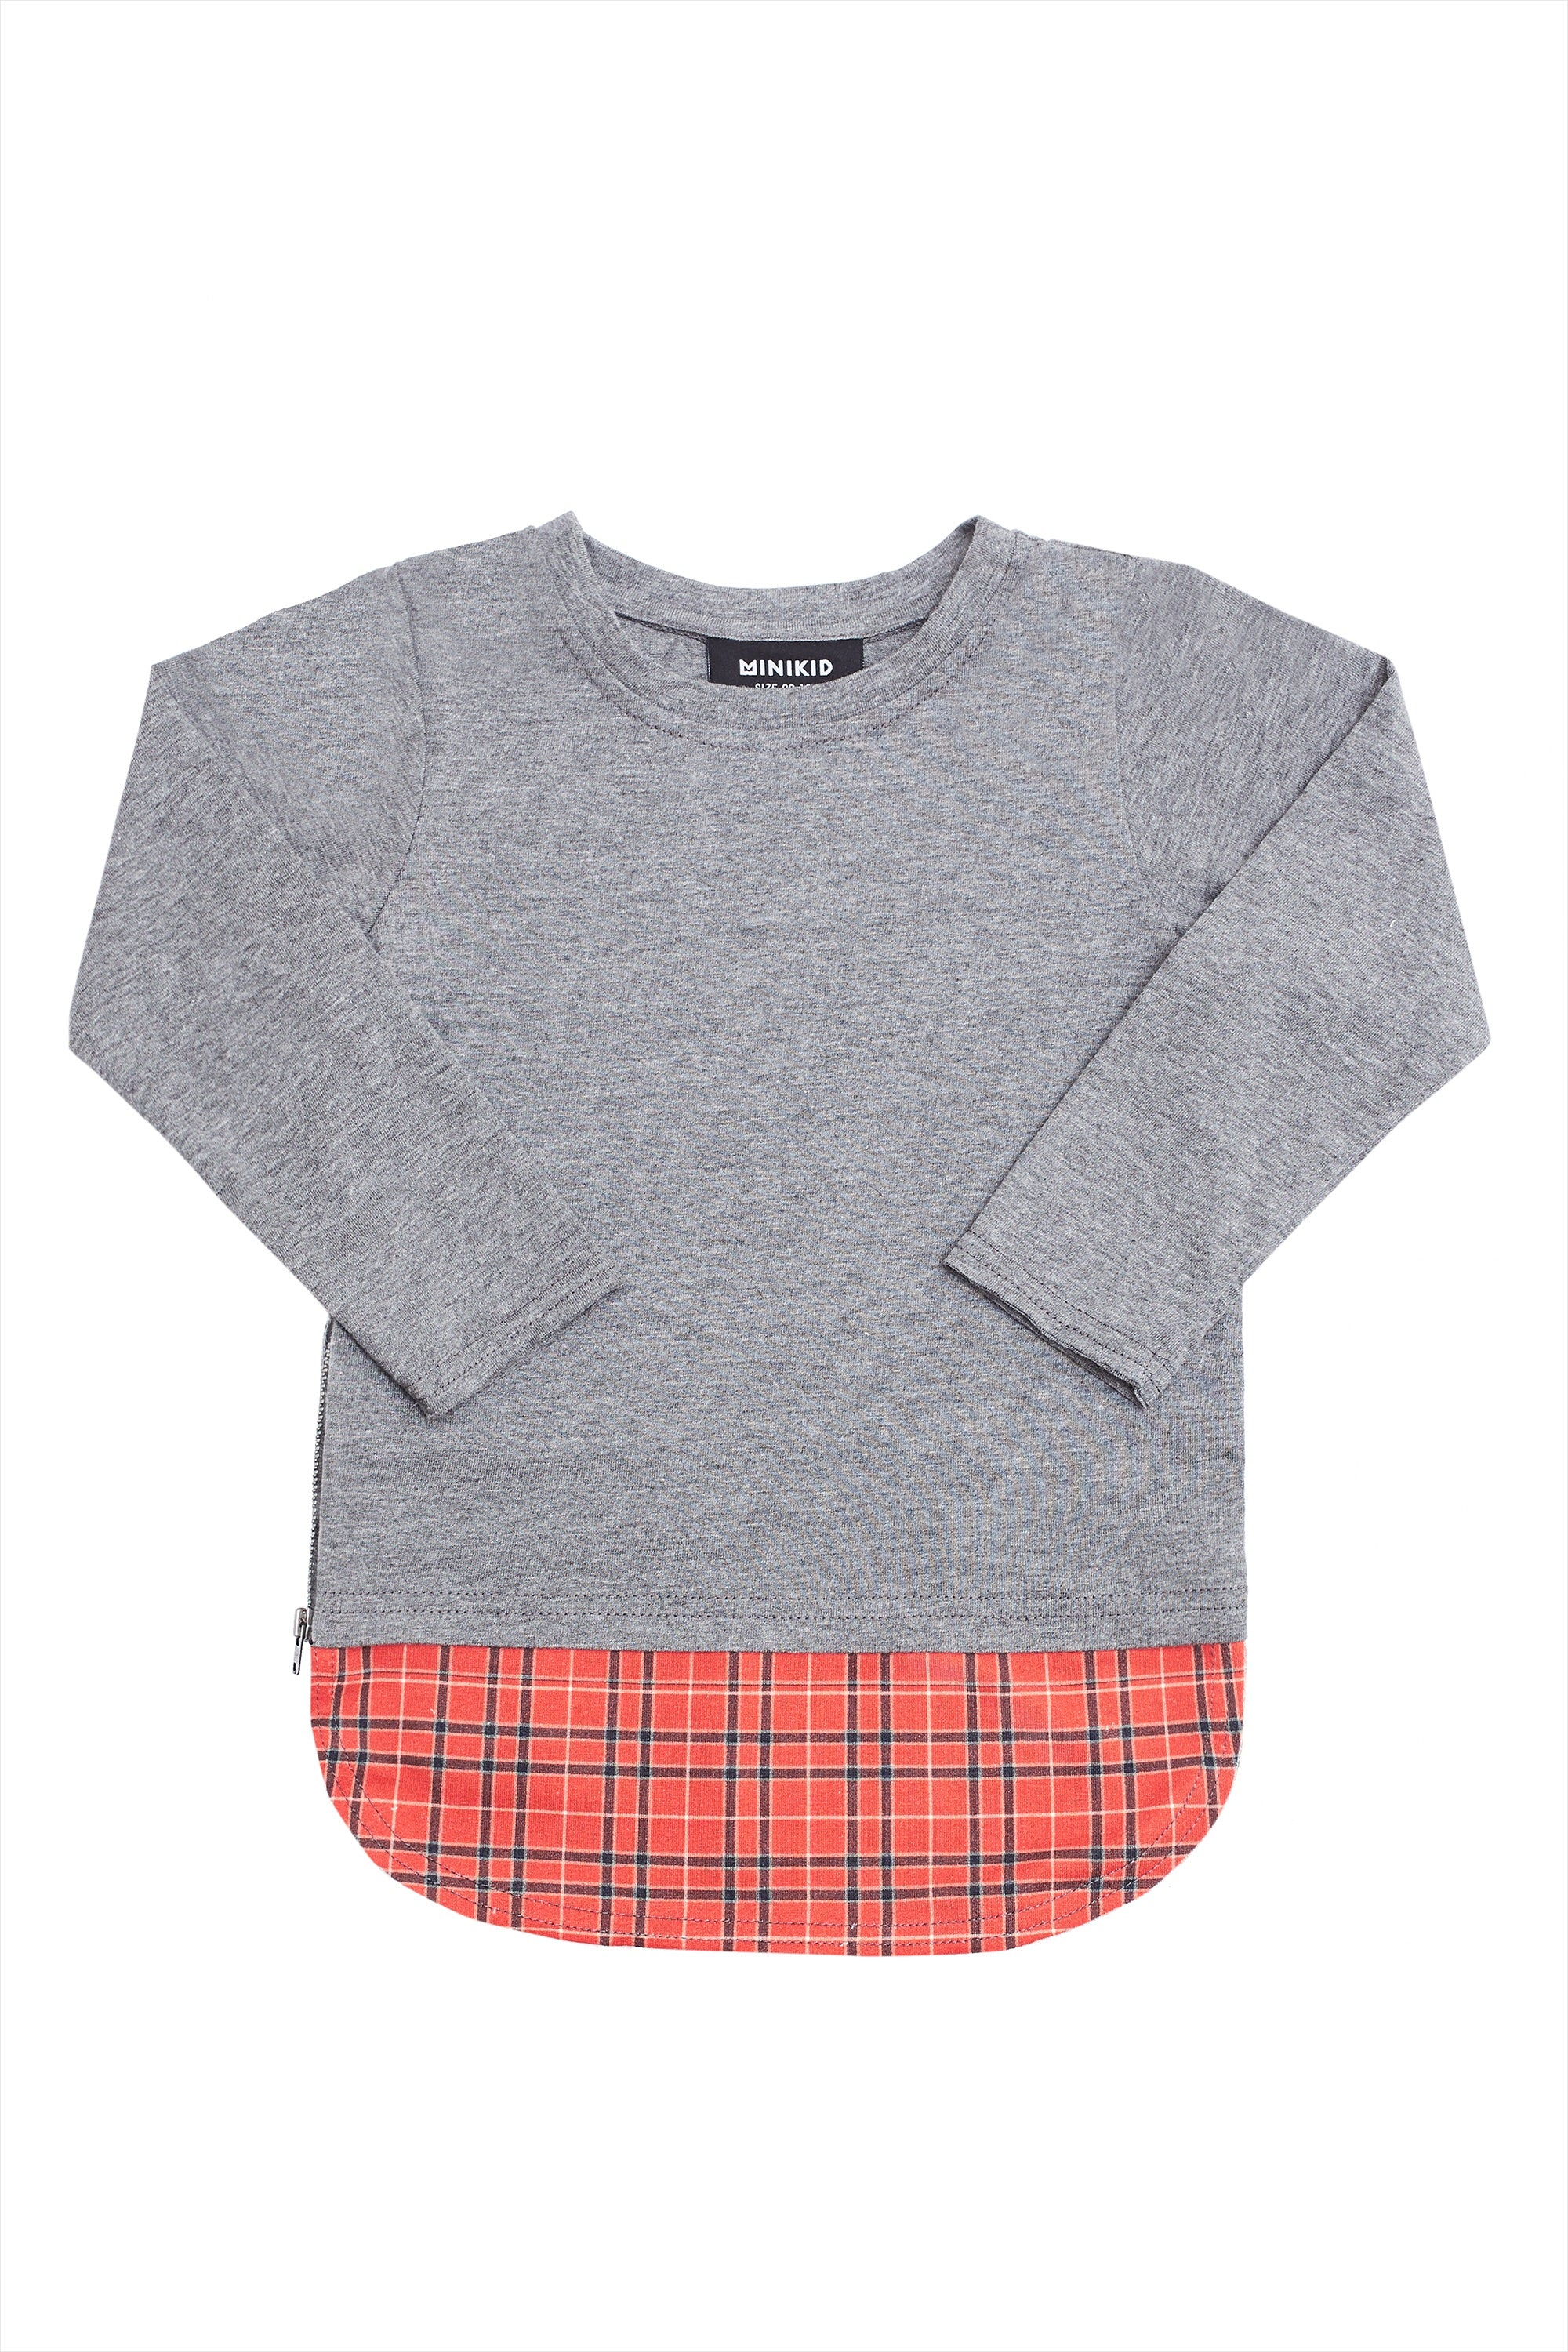 L/S GREY & RED CHECKERED TEE